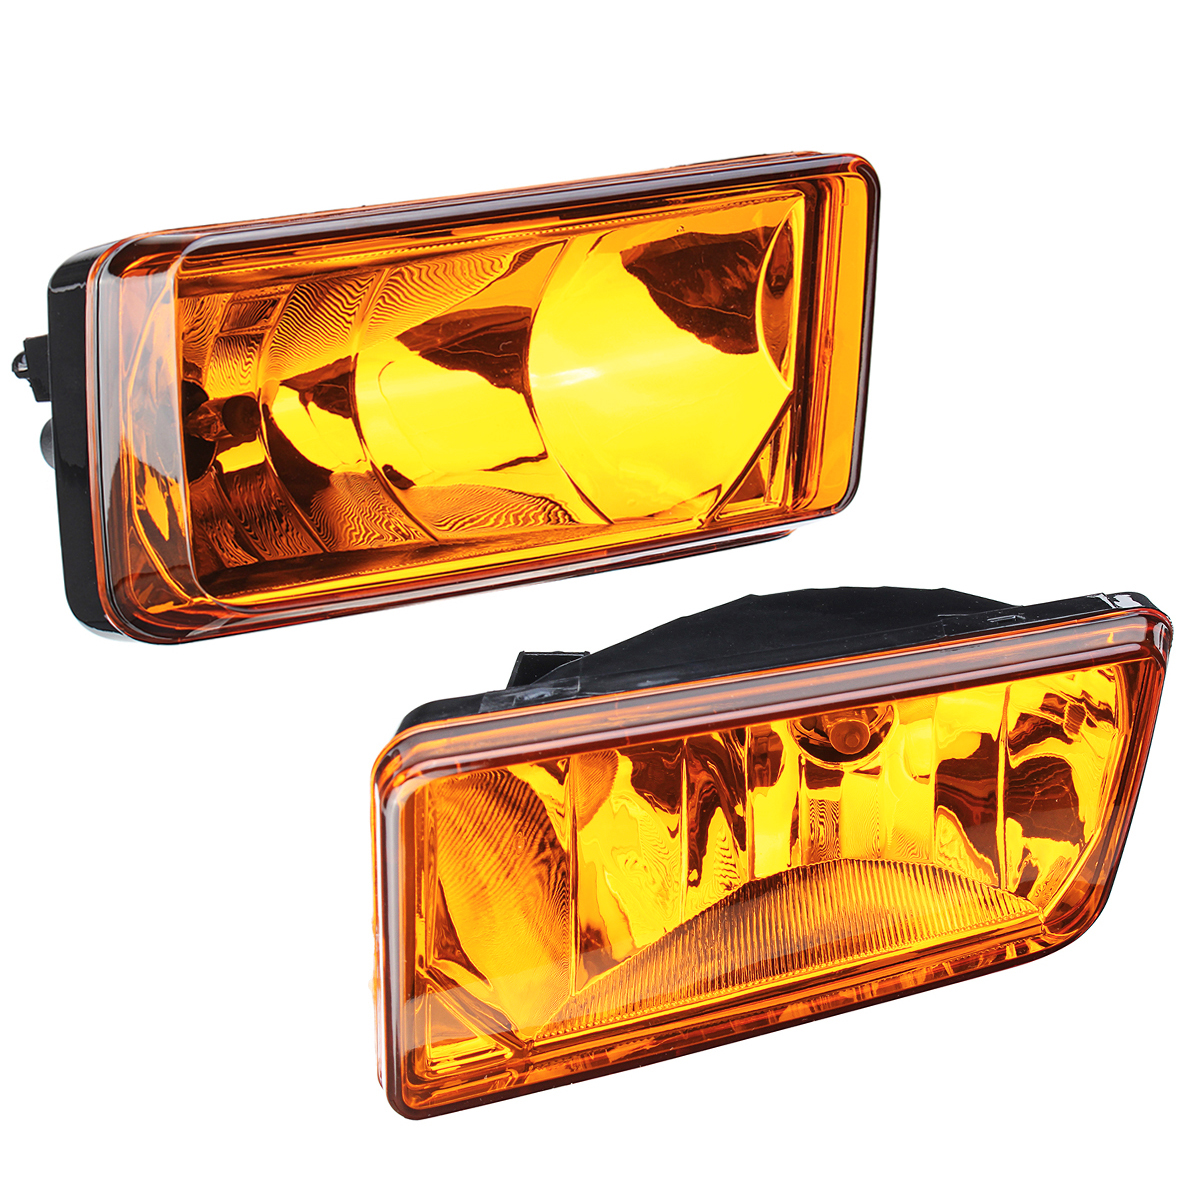 Pair Car Front Fog Lights For Chevy Silverado Tahoe Suburban 07-14 Clear/Amber/Smoke